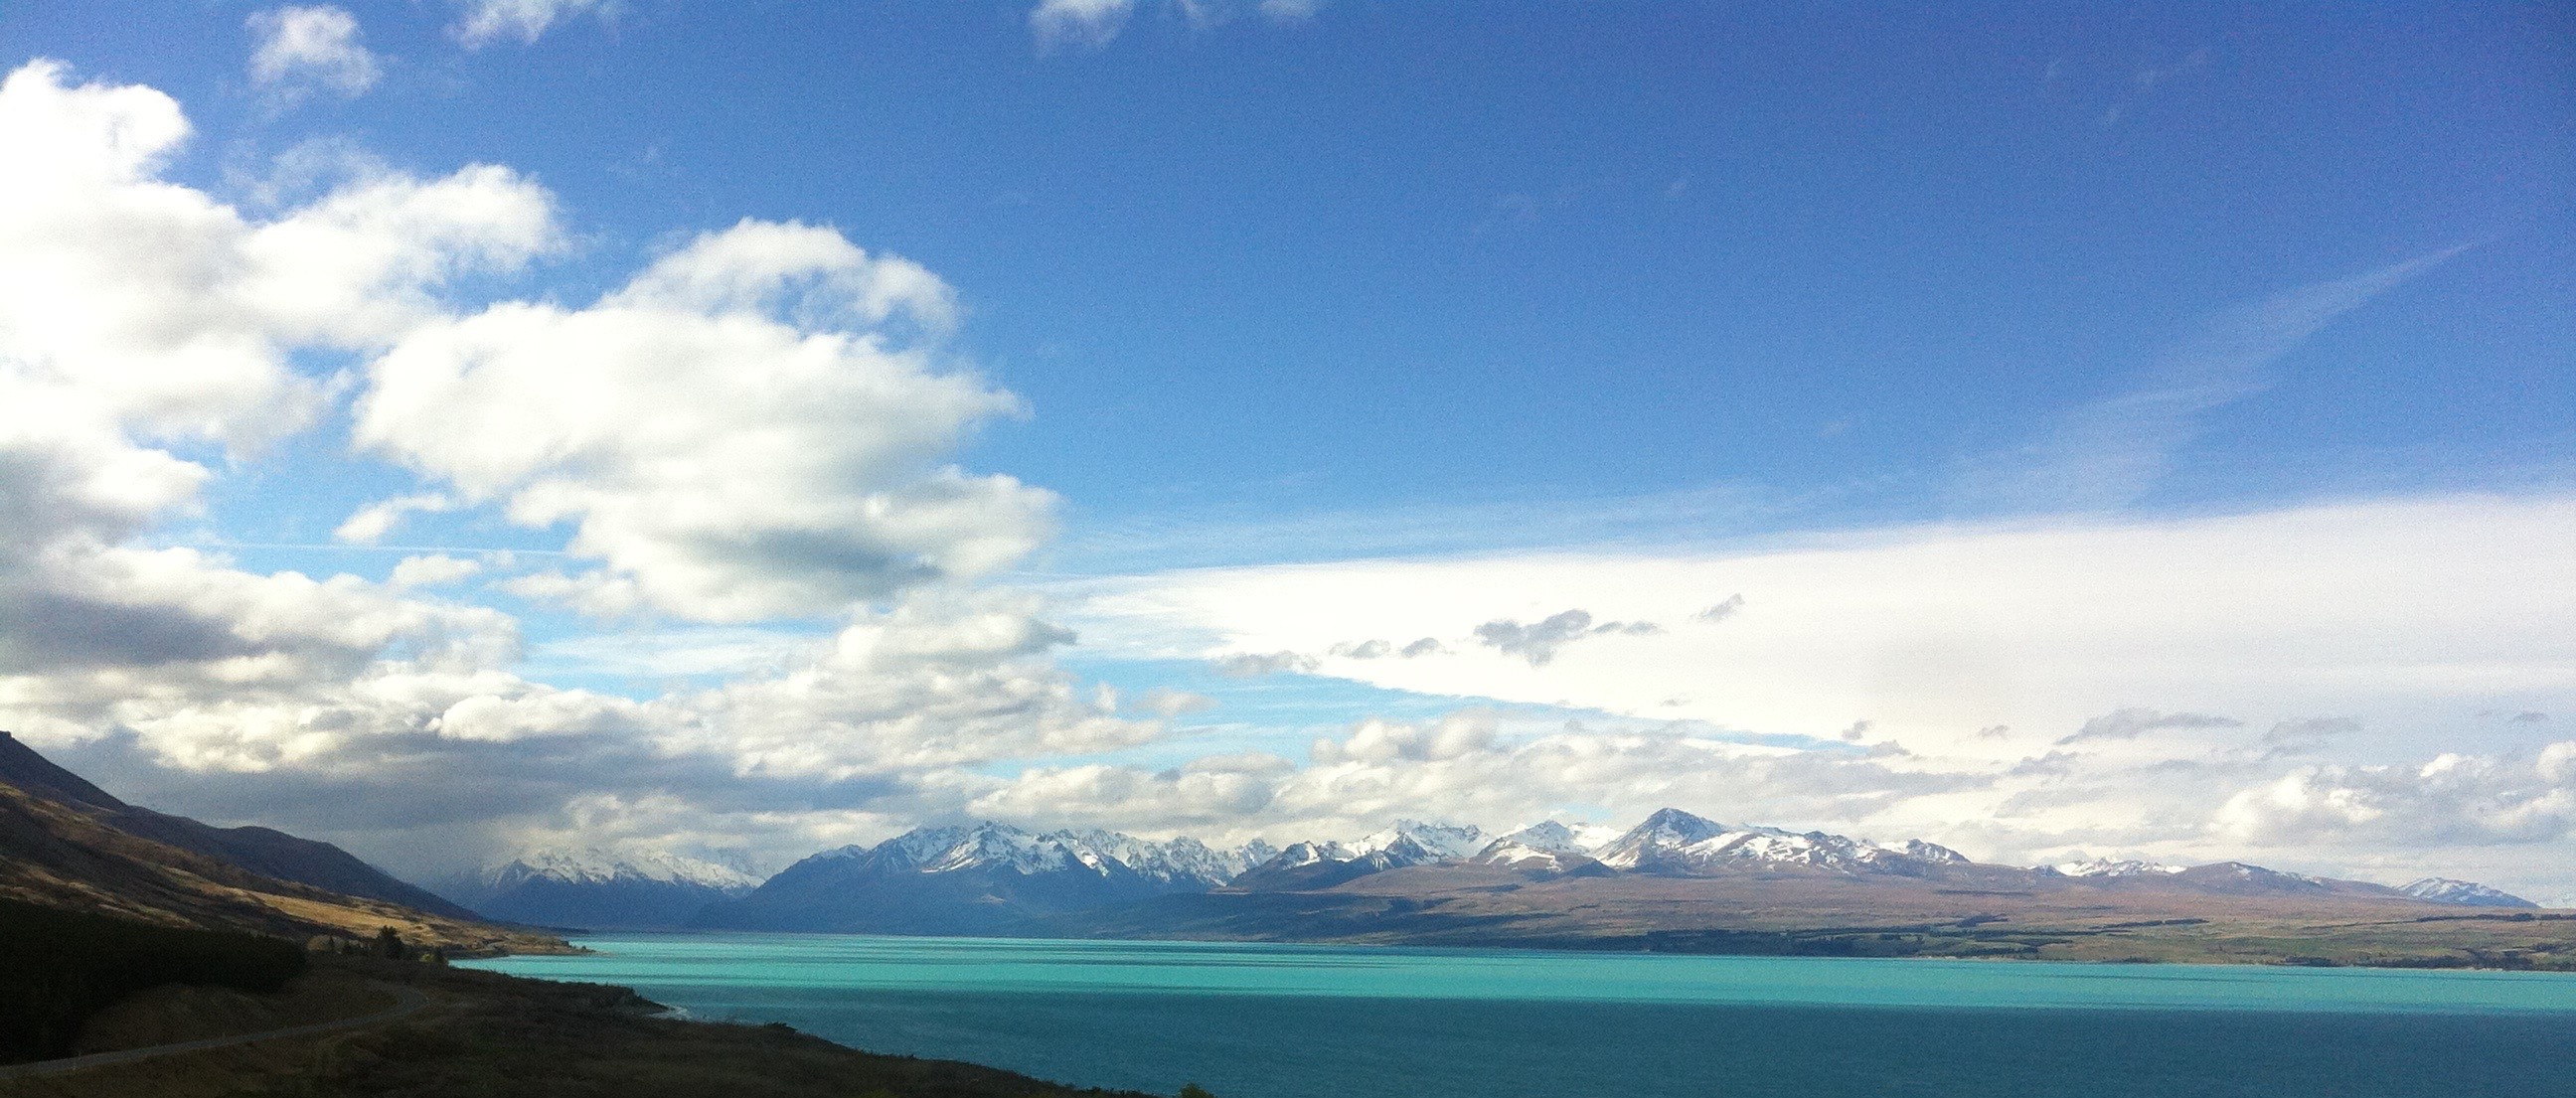 lake Top 5 Places to Visit on the South Island of New Zealand